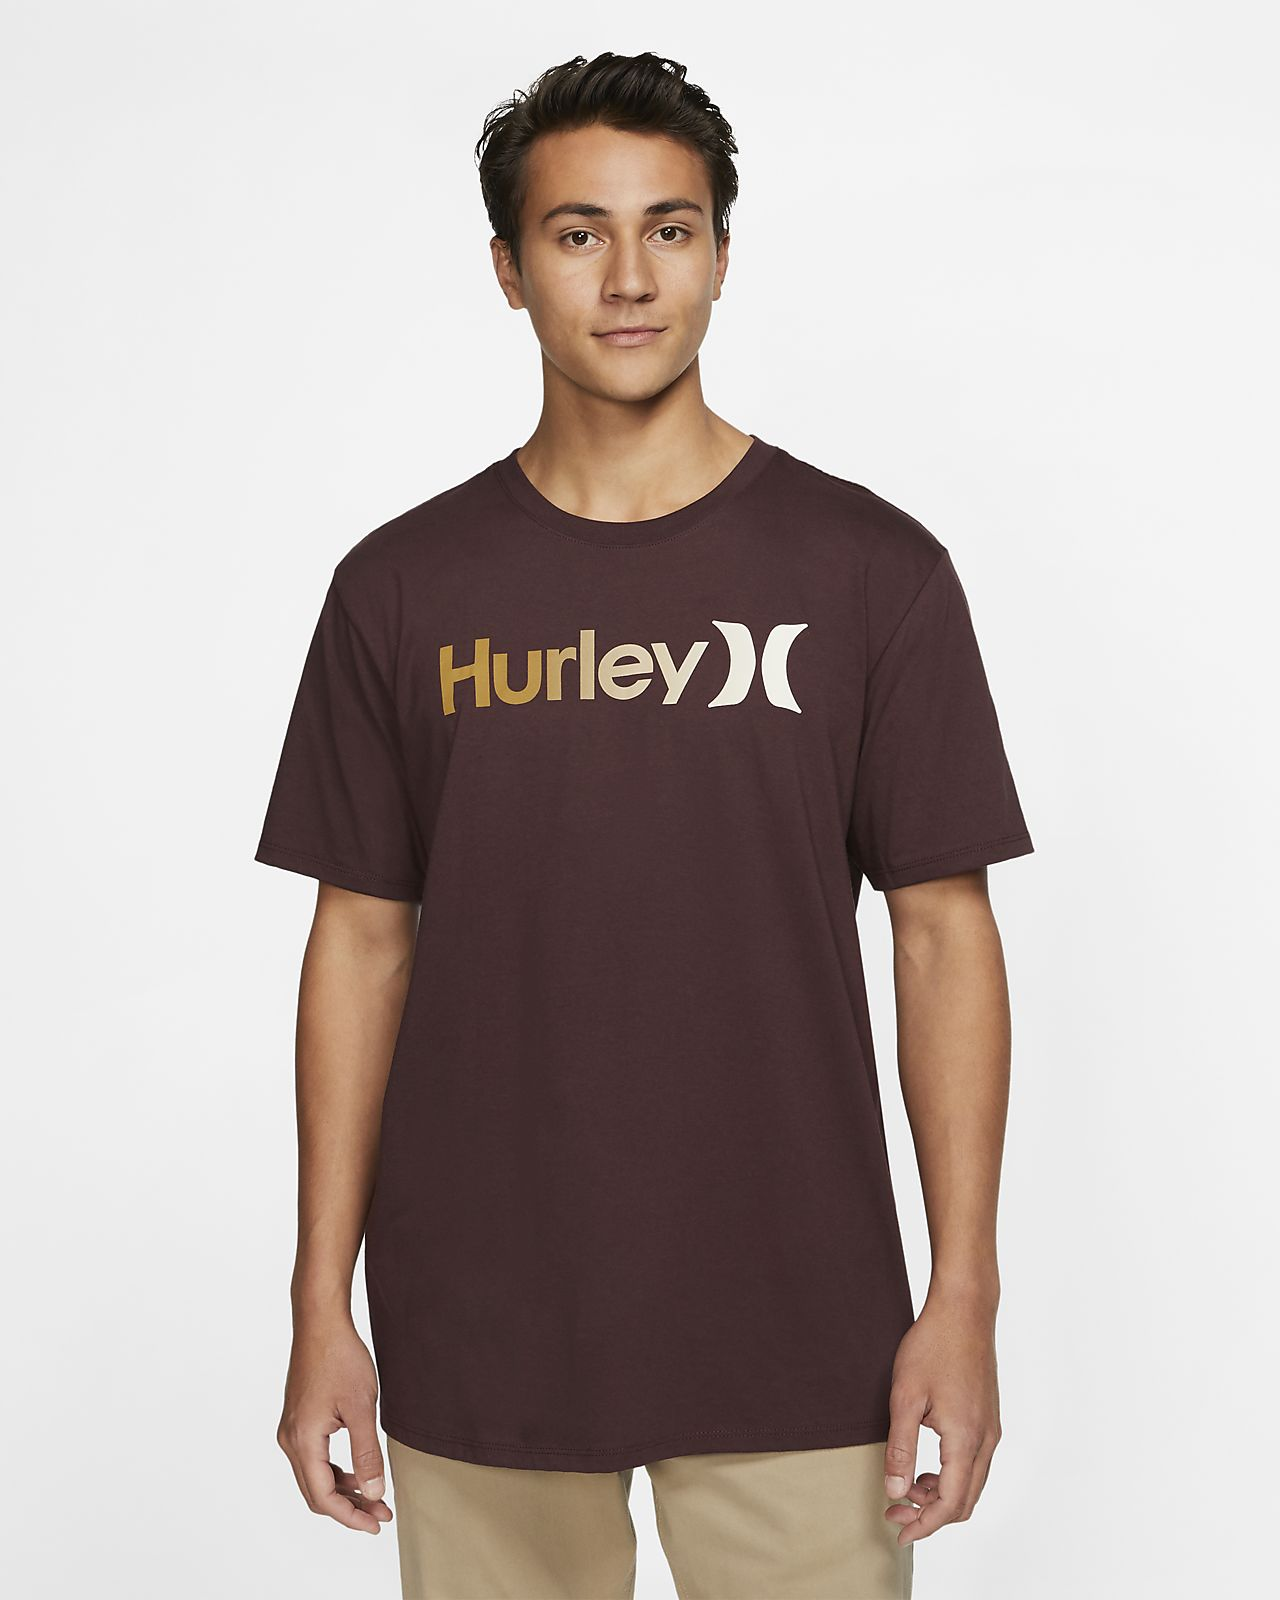 Hurley Premium One And Only Gradient 2.0 Erkek Tişörtü